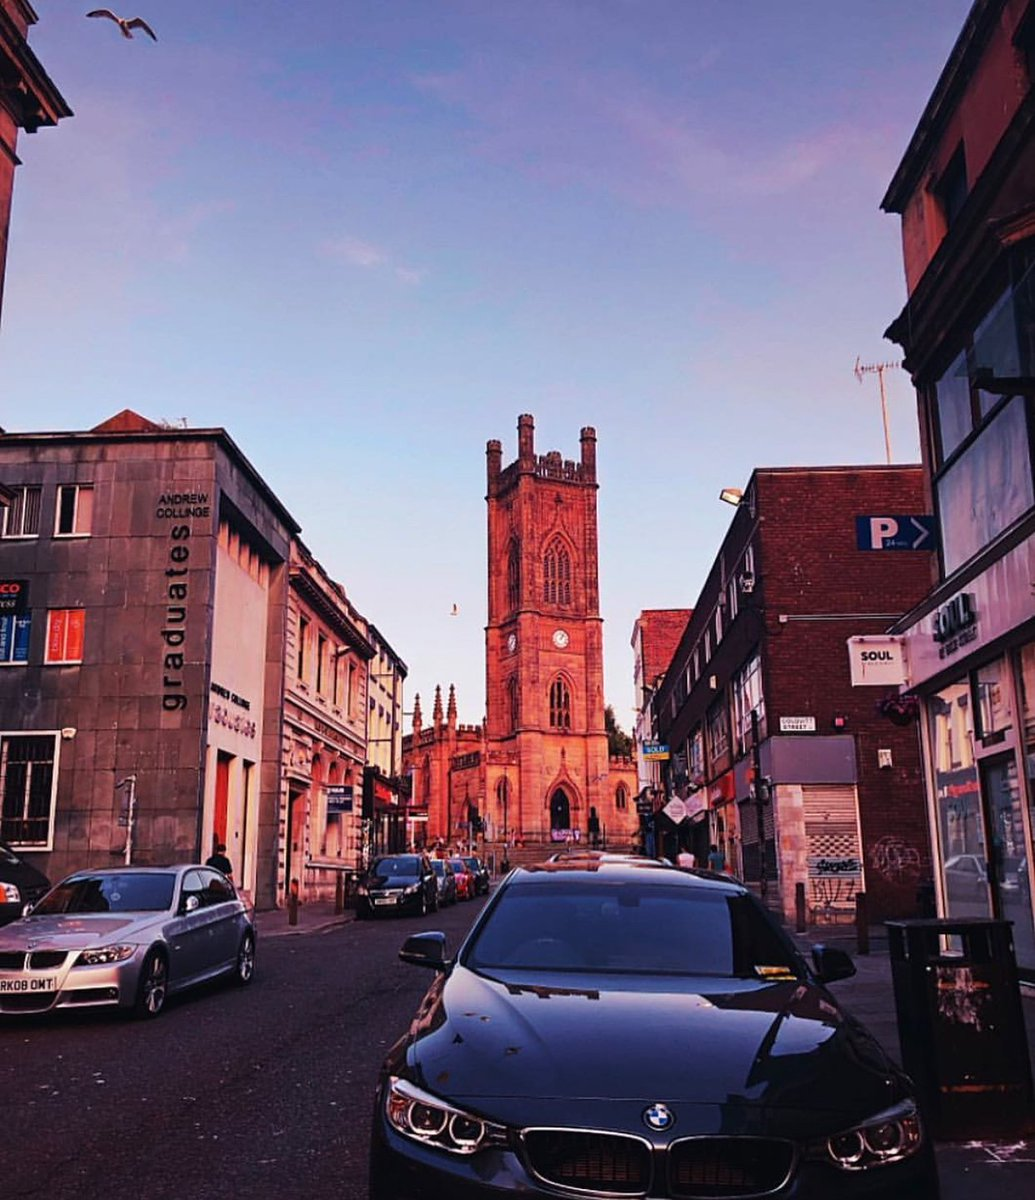 Bold street is looking mighty fine today! 🌇 https://t.co/D9LP952C18